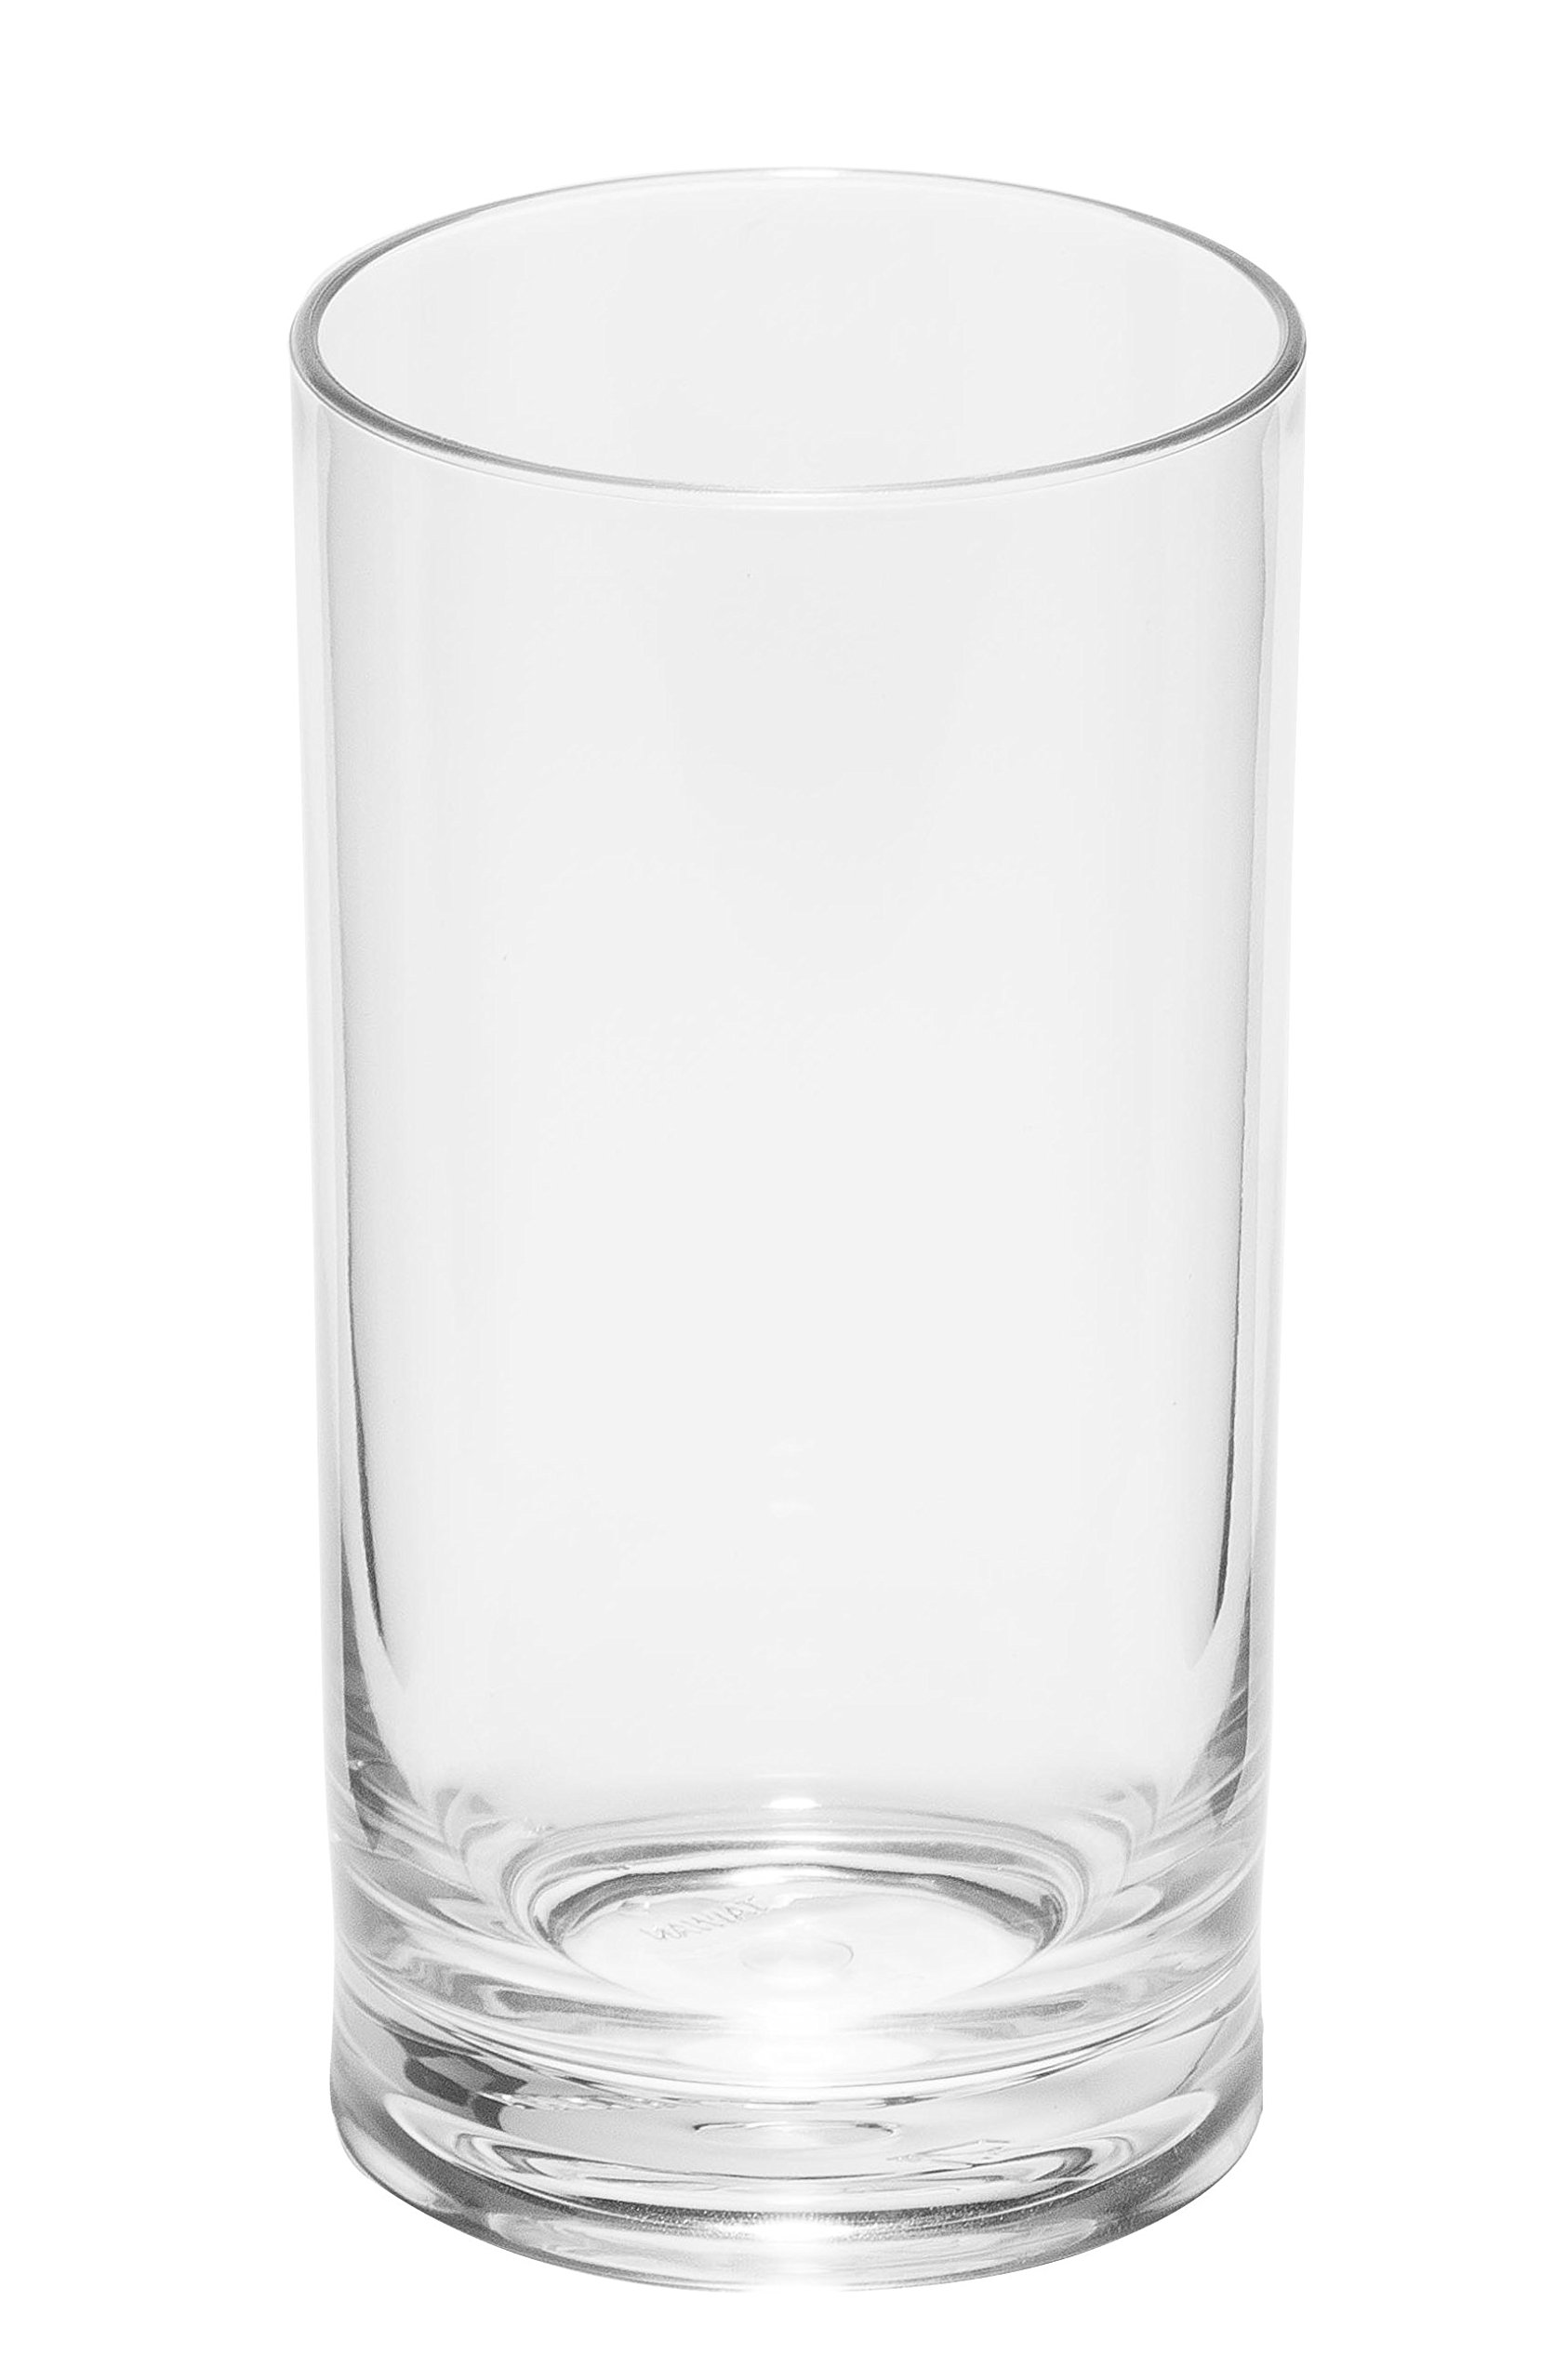 Game Changer Unbreakable Combo Highball/Water Glasses | Style, Strength and Durability | Thickened Tritan Bases | Indoor/Outdoor Multi-purpose Plastic Glasses | 17 Ounce Set of 4 by Top Shelf Barware (Image #2)